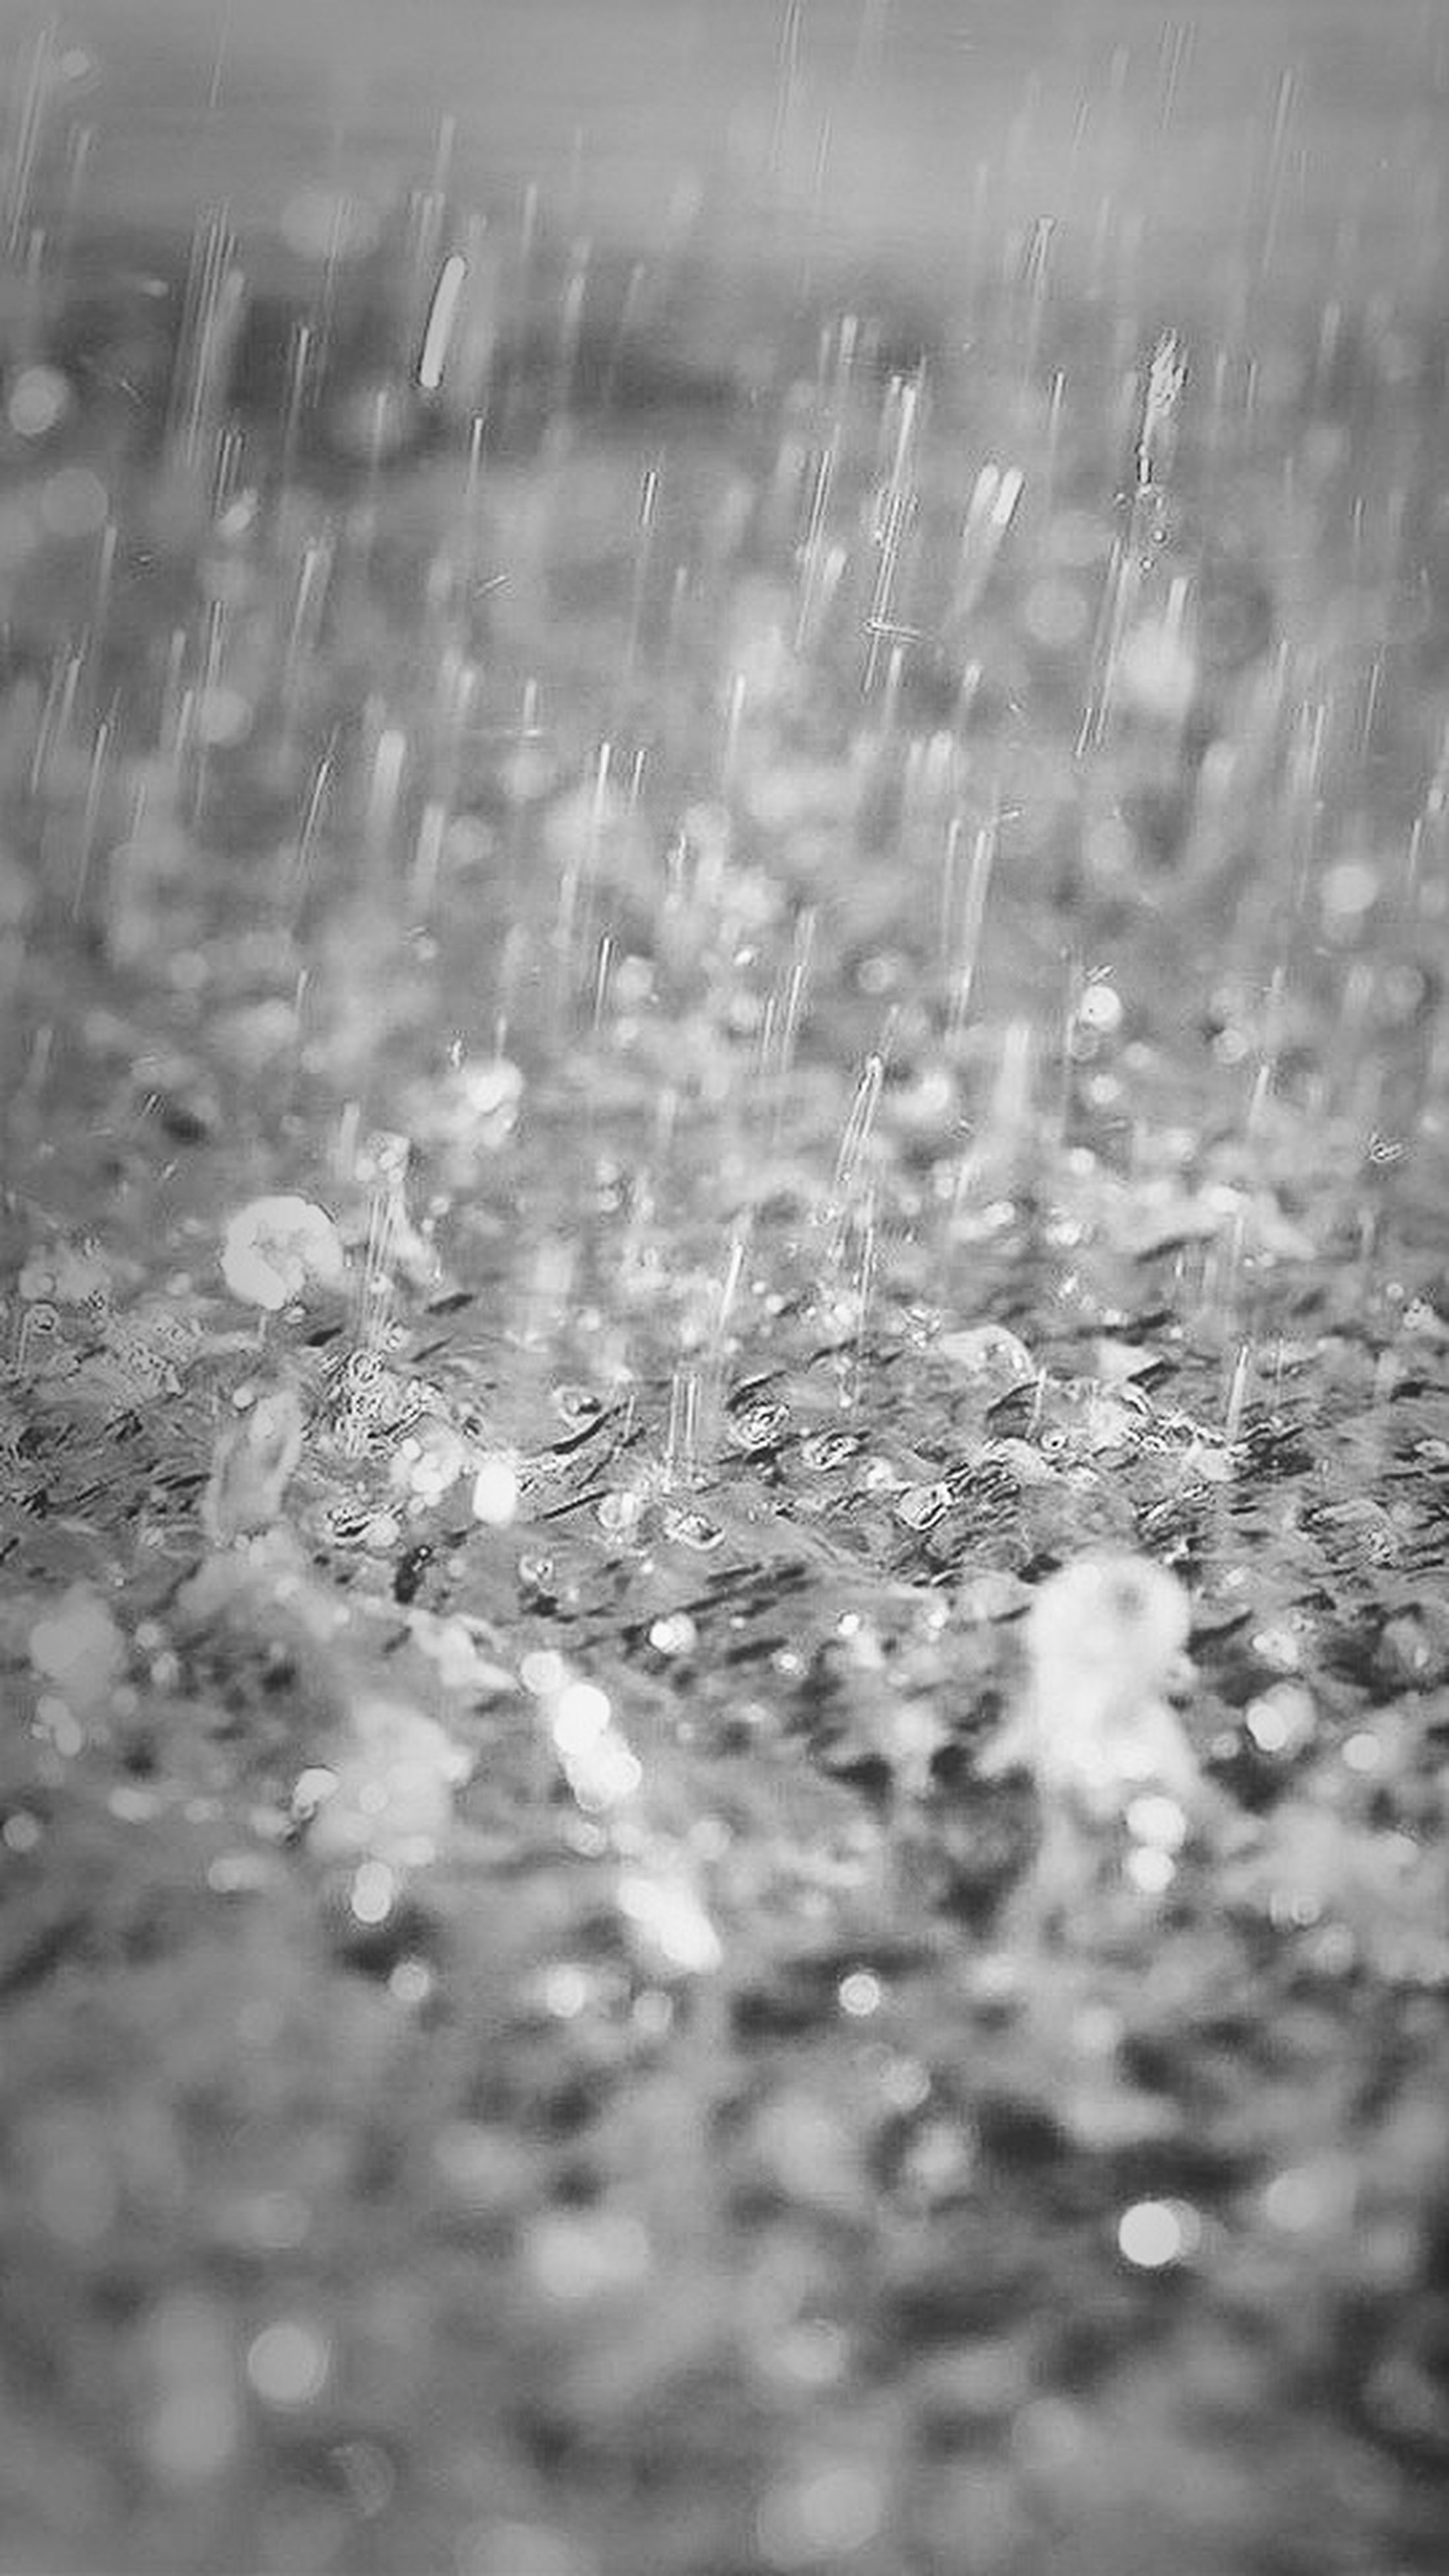 drop, selective focus, water, wet, close-up, nature, plant, growth, field, fragility, focus on foreground, beauty in nature, freshness, rain, grass, tranquility, weather, season, day, transparent